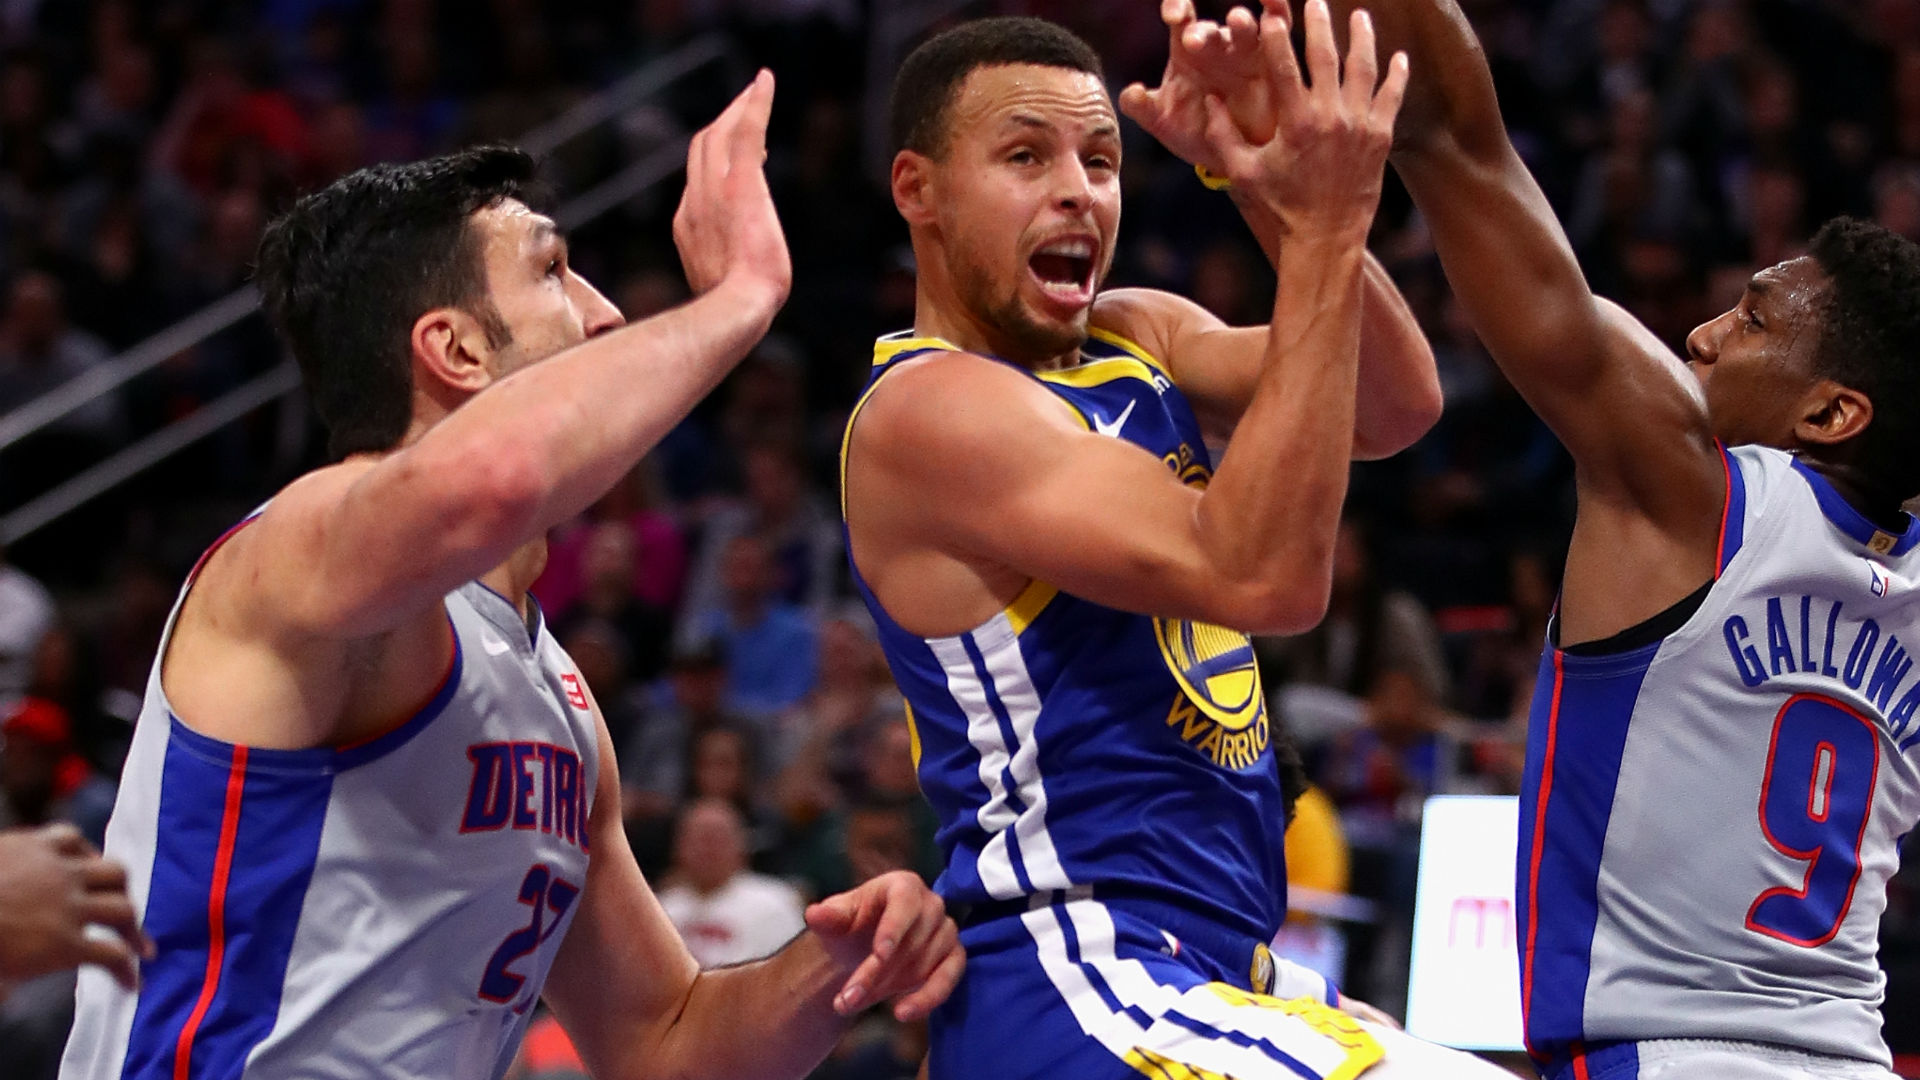 Warriors fall to Pistons in Curry's return